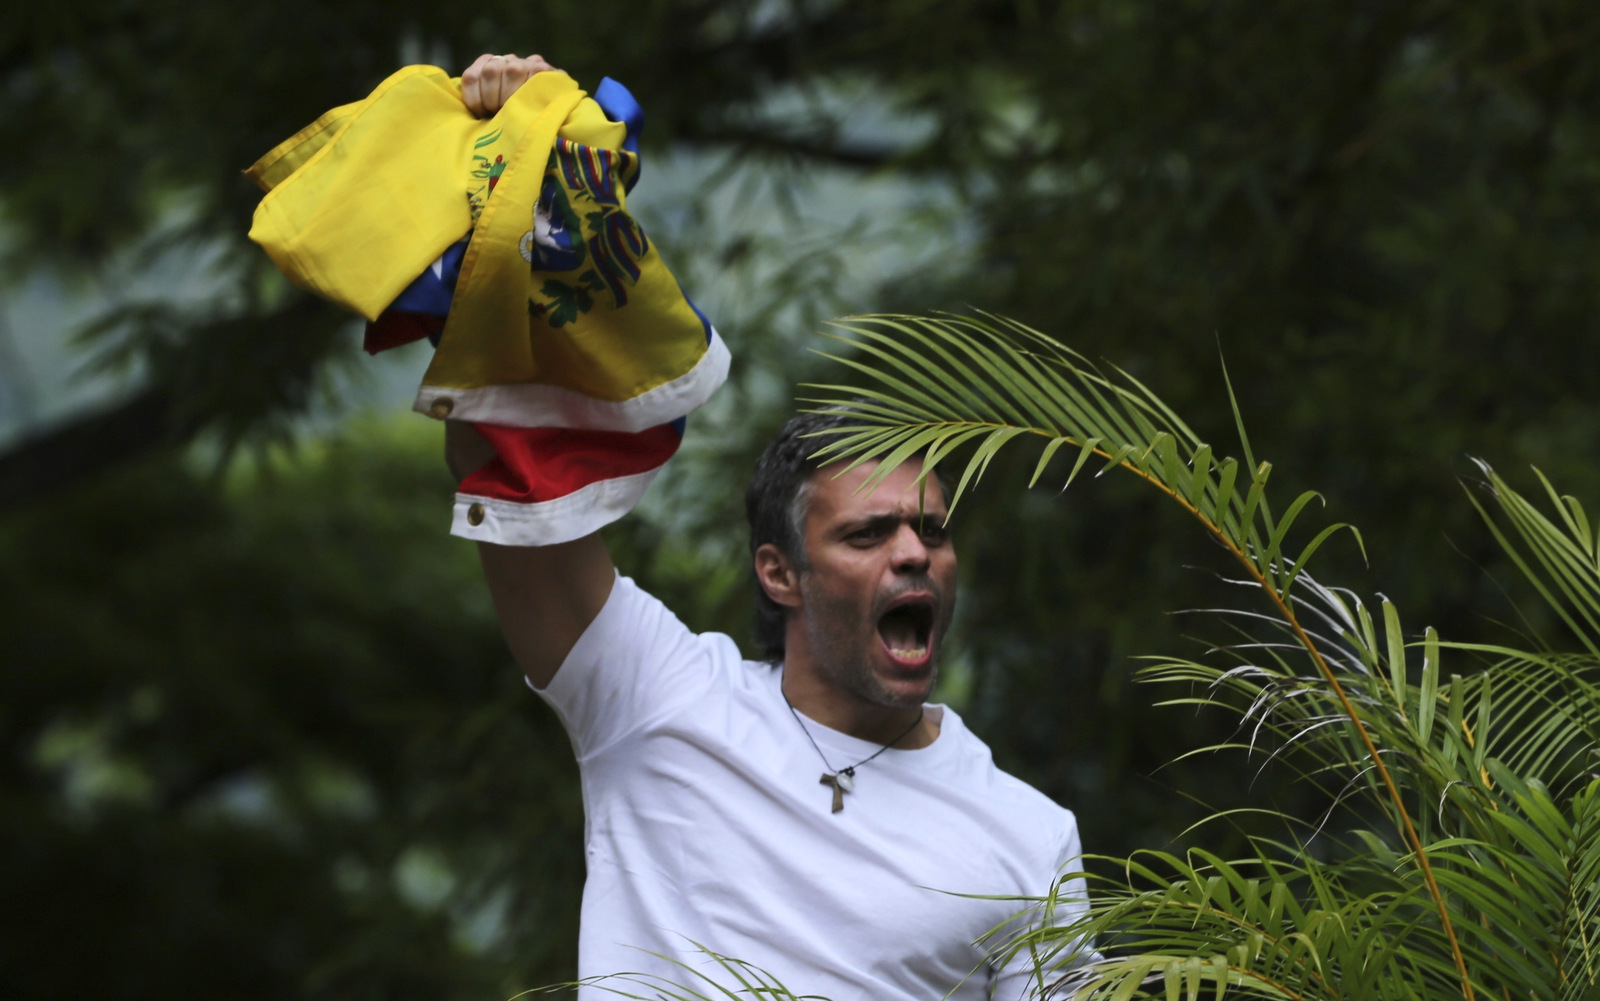 The New York Times' Uncanny Comparison of a Venezuelan Opposition Leader to Martin Luther King